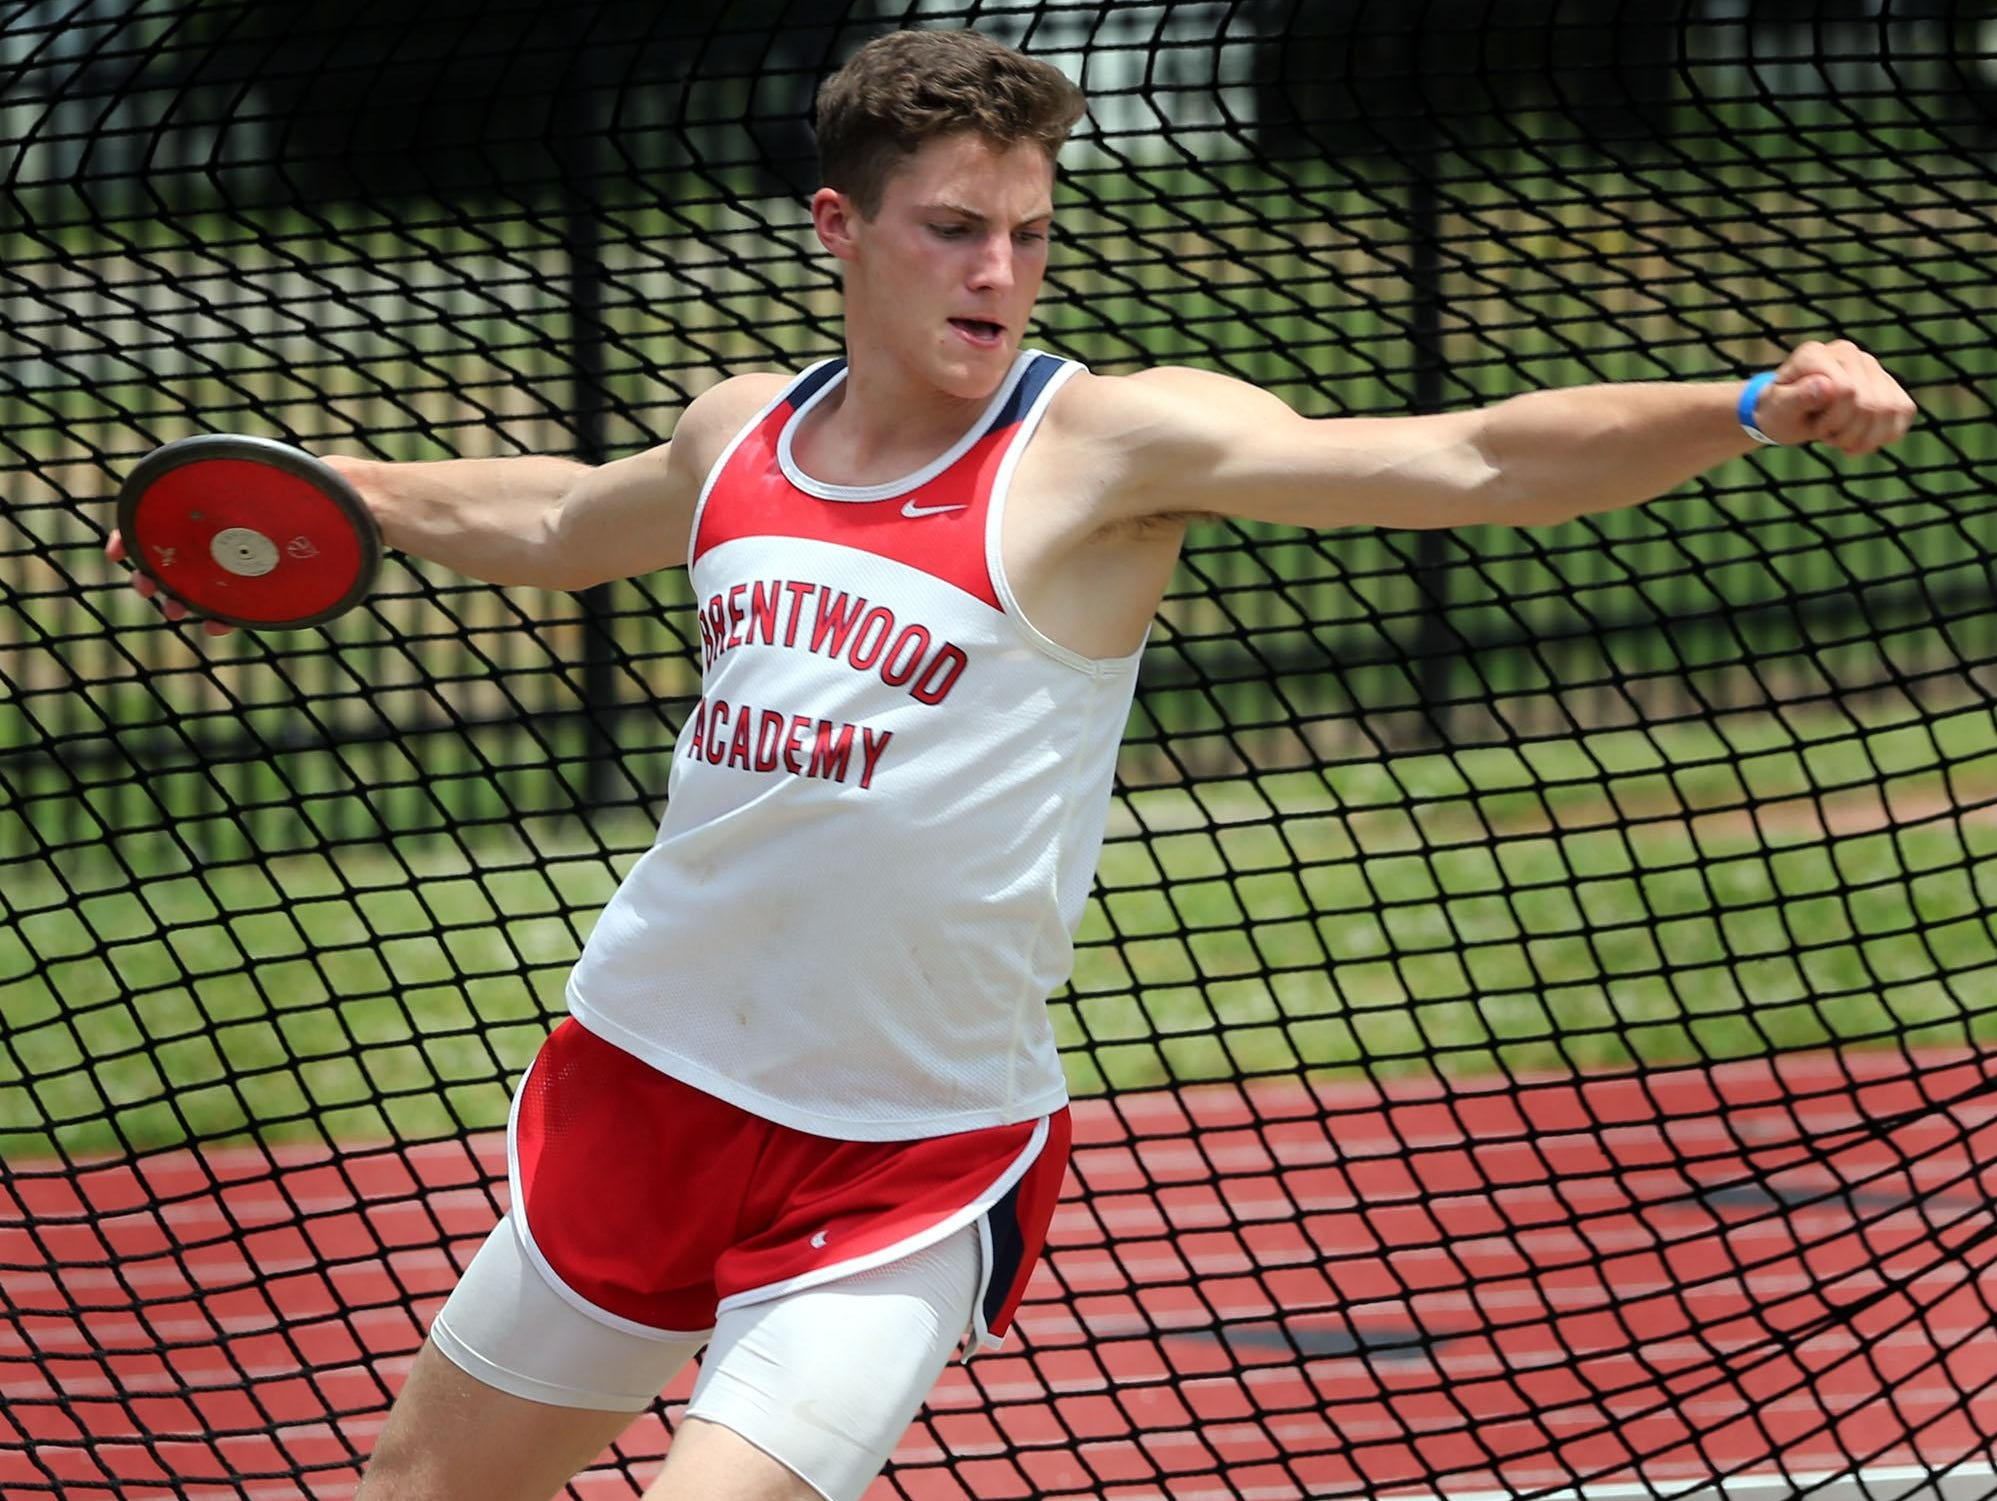 Brentwood Academy rising senior George Patrick has been selected to represent Team USA at the IAAF World Youth Championships in Cali, Colombia, later this month.